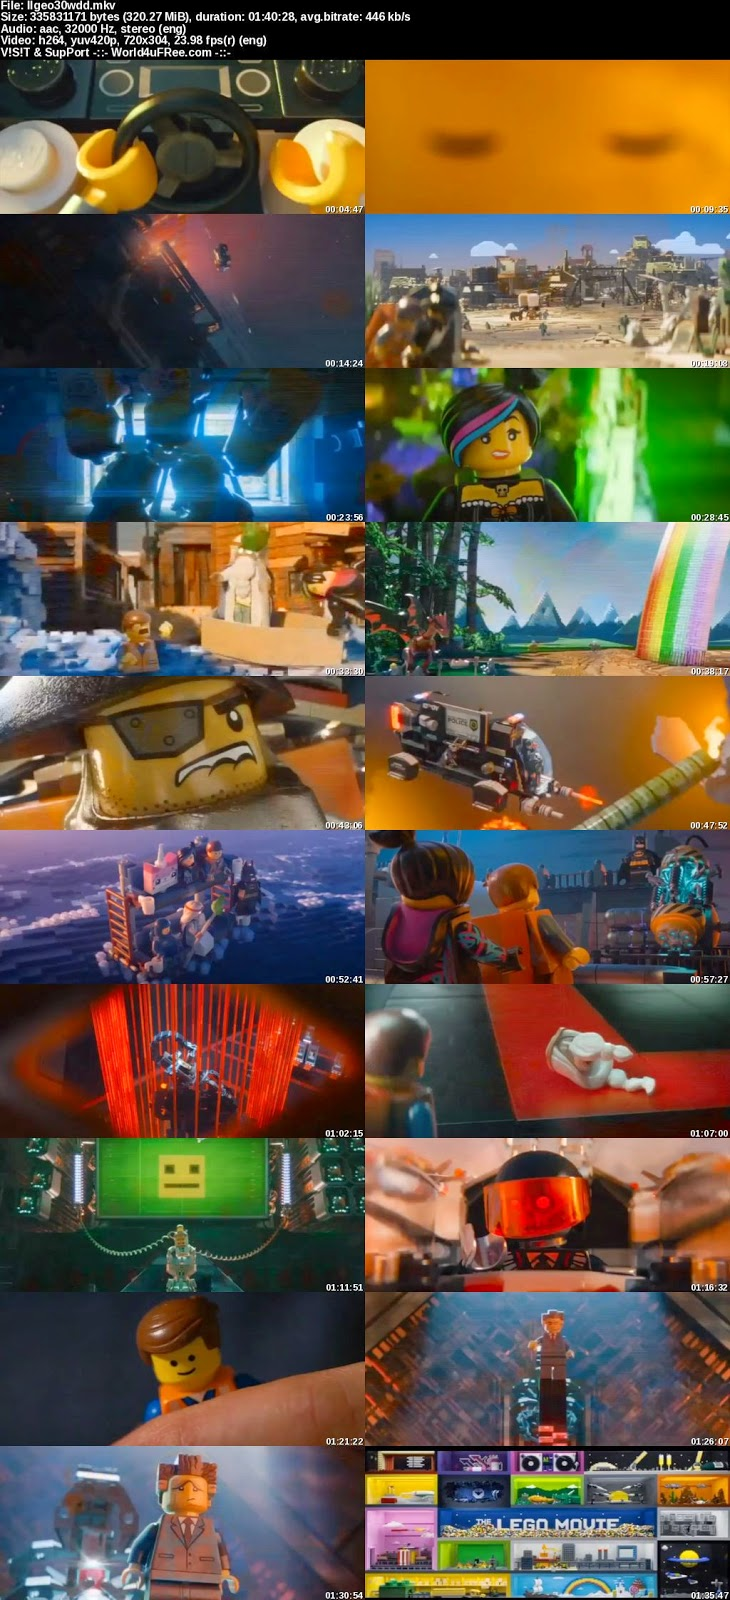 Watch Full Movie The Lego Movie 2014 HD WEBRip 480p 300mb.